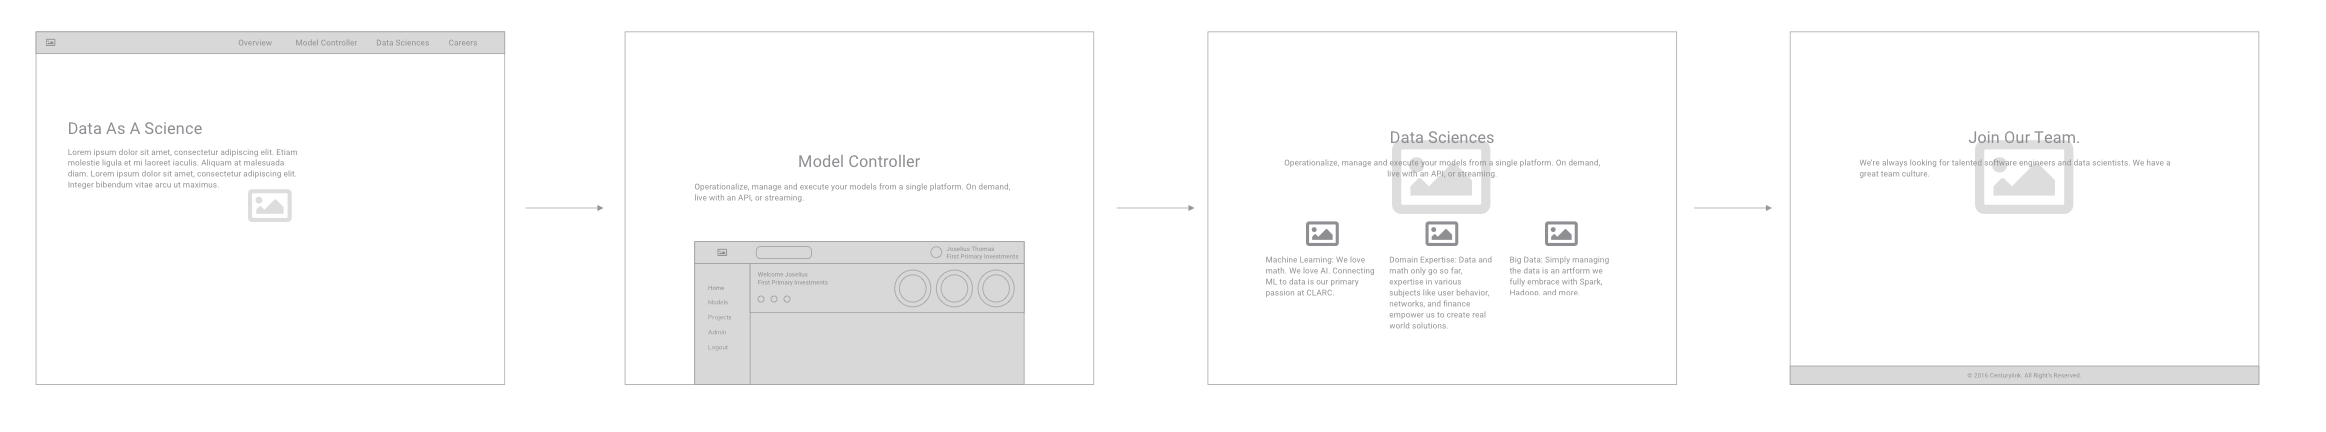 CLARC Home Wireframe